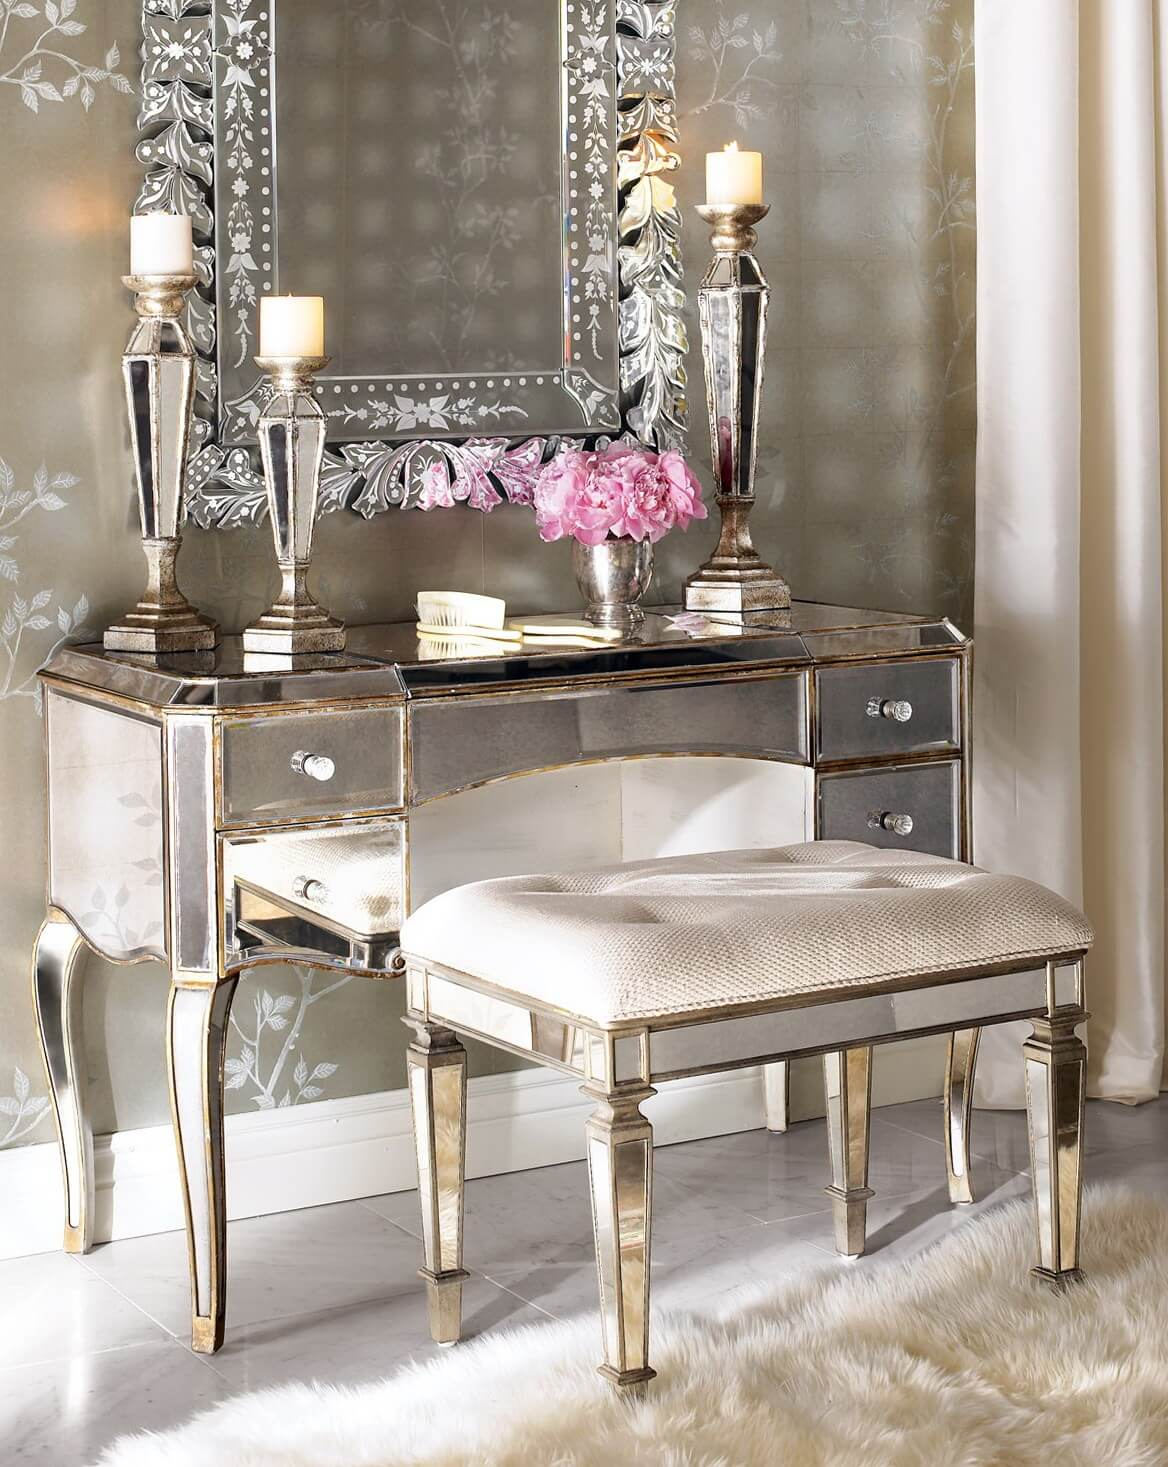 Best 15 Stunning Makeup Vanity Decor Ideas Style Motivation This Month